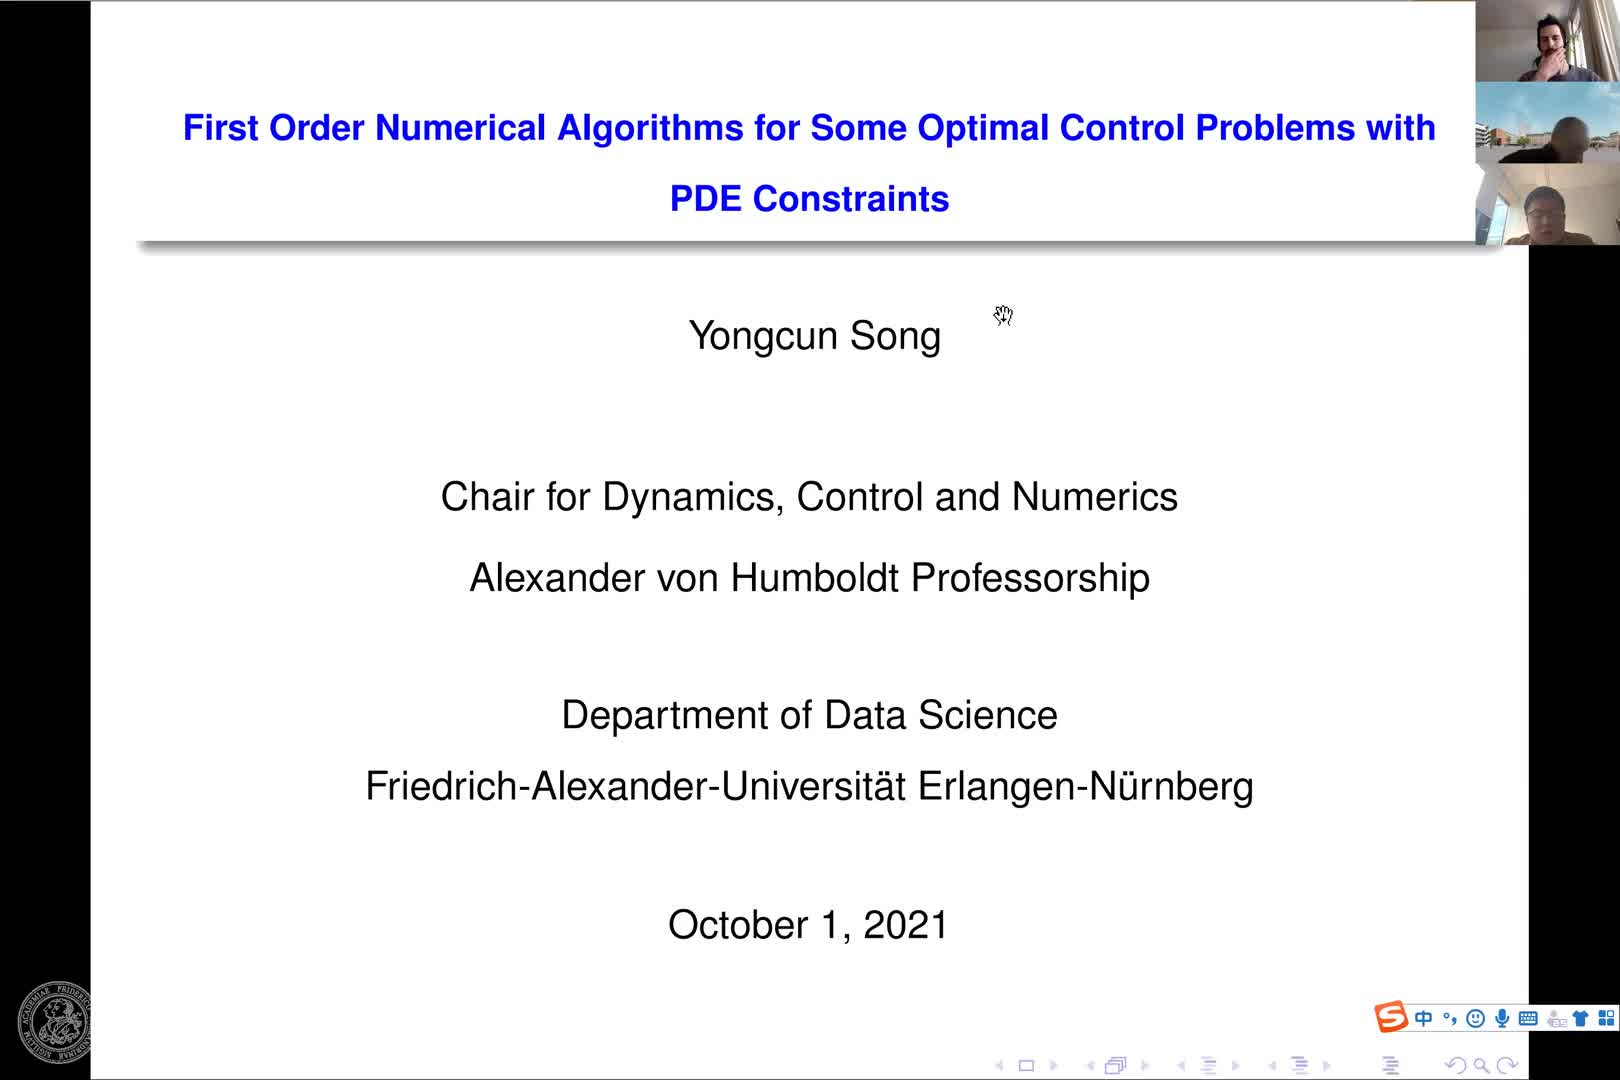 First order numerical algorithms for some optimal control problems with PDE constraints (Y. Song, FAU) preview image